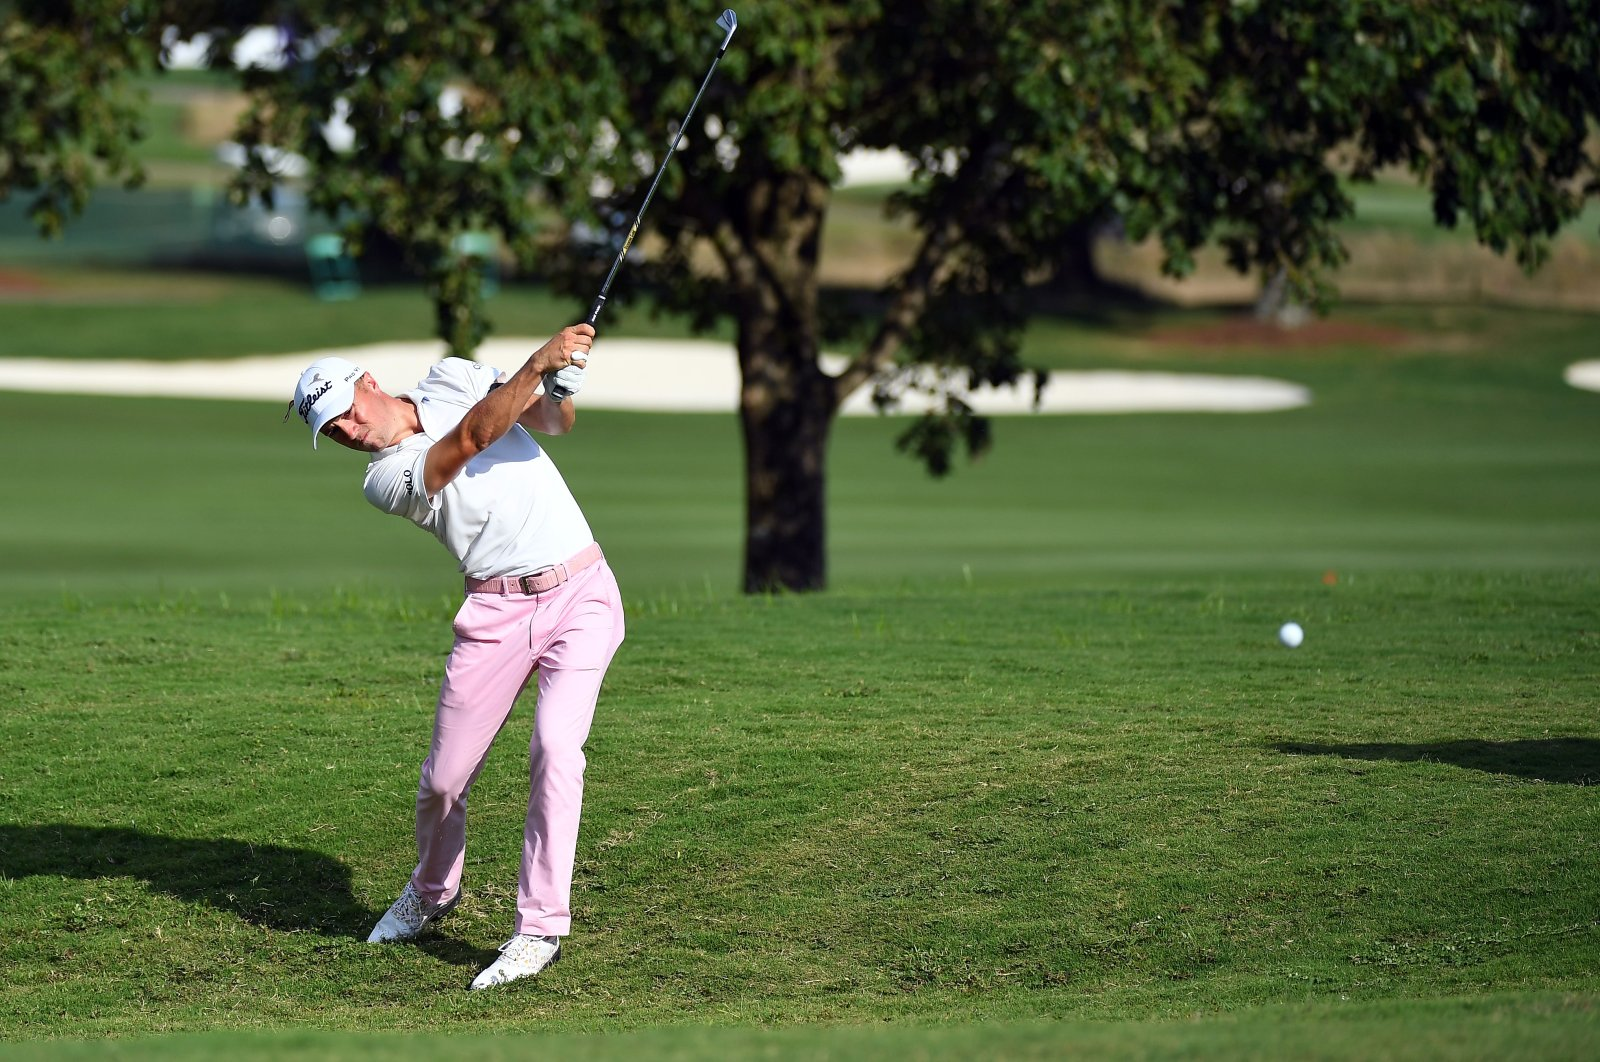 Justin Thomas, a favorite in the upcoming tournament, plays his shot at the FedEx St. Jude Invitational in Memphis, Tennesee, U.S., Aug. 2, 2020. (Reuters Photo)